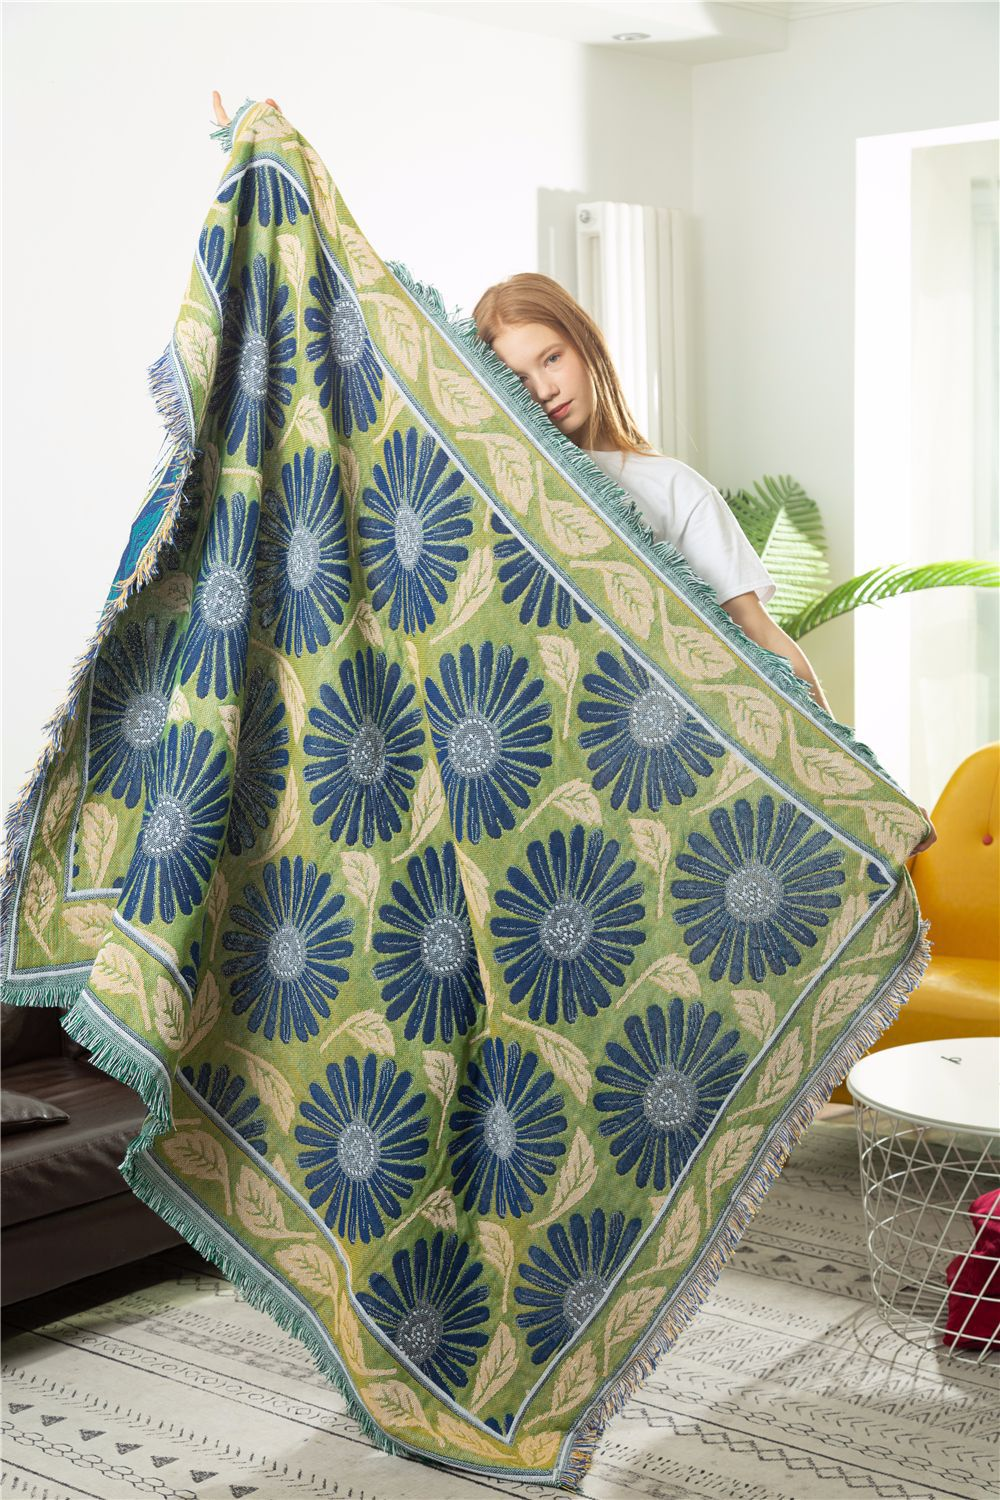 Geometry Home Couch Armchair Blanket Sofa Cover Cobertor Hanging Tapestry for Living Room